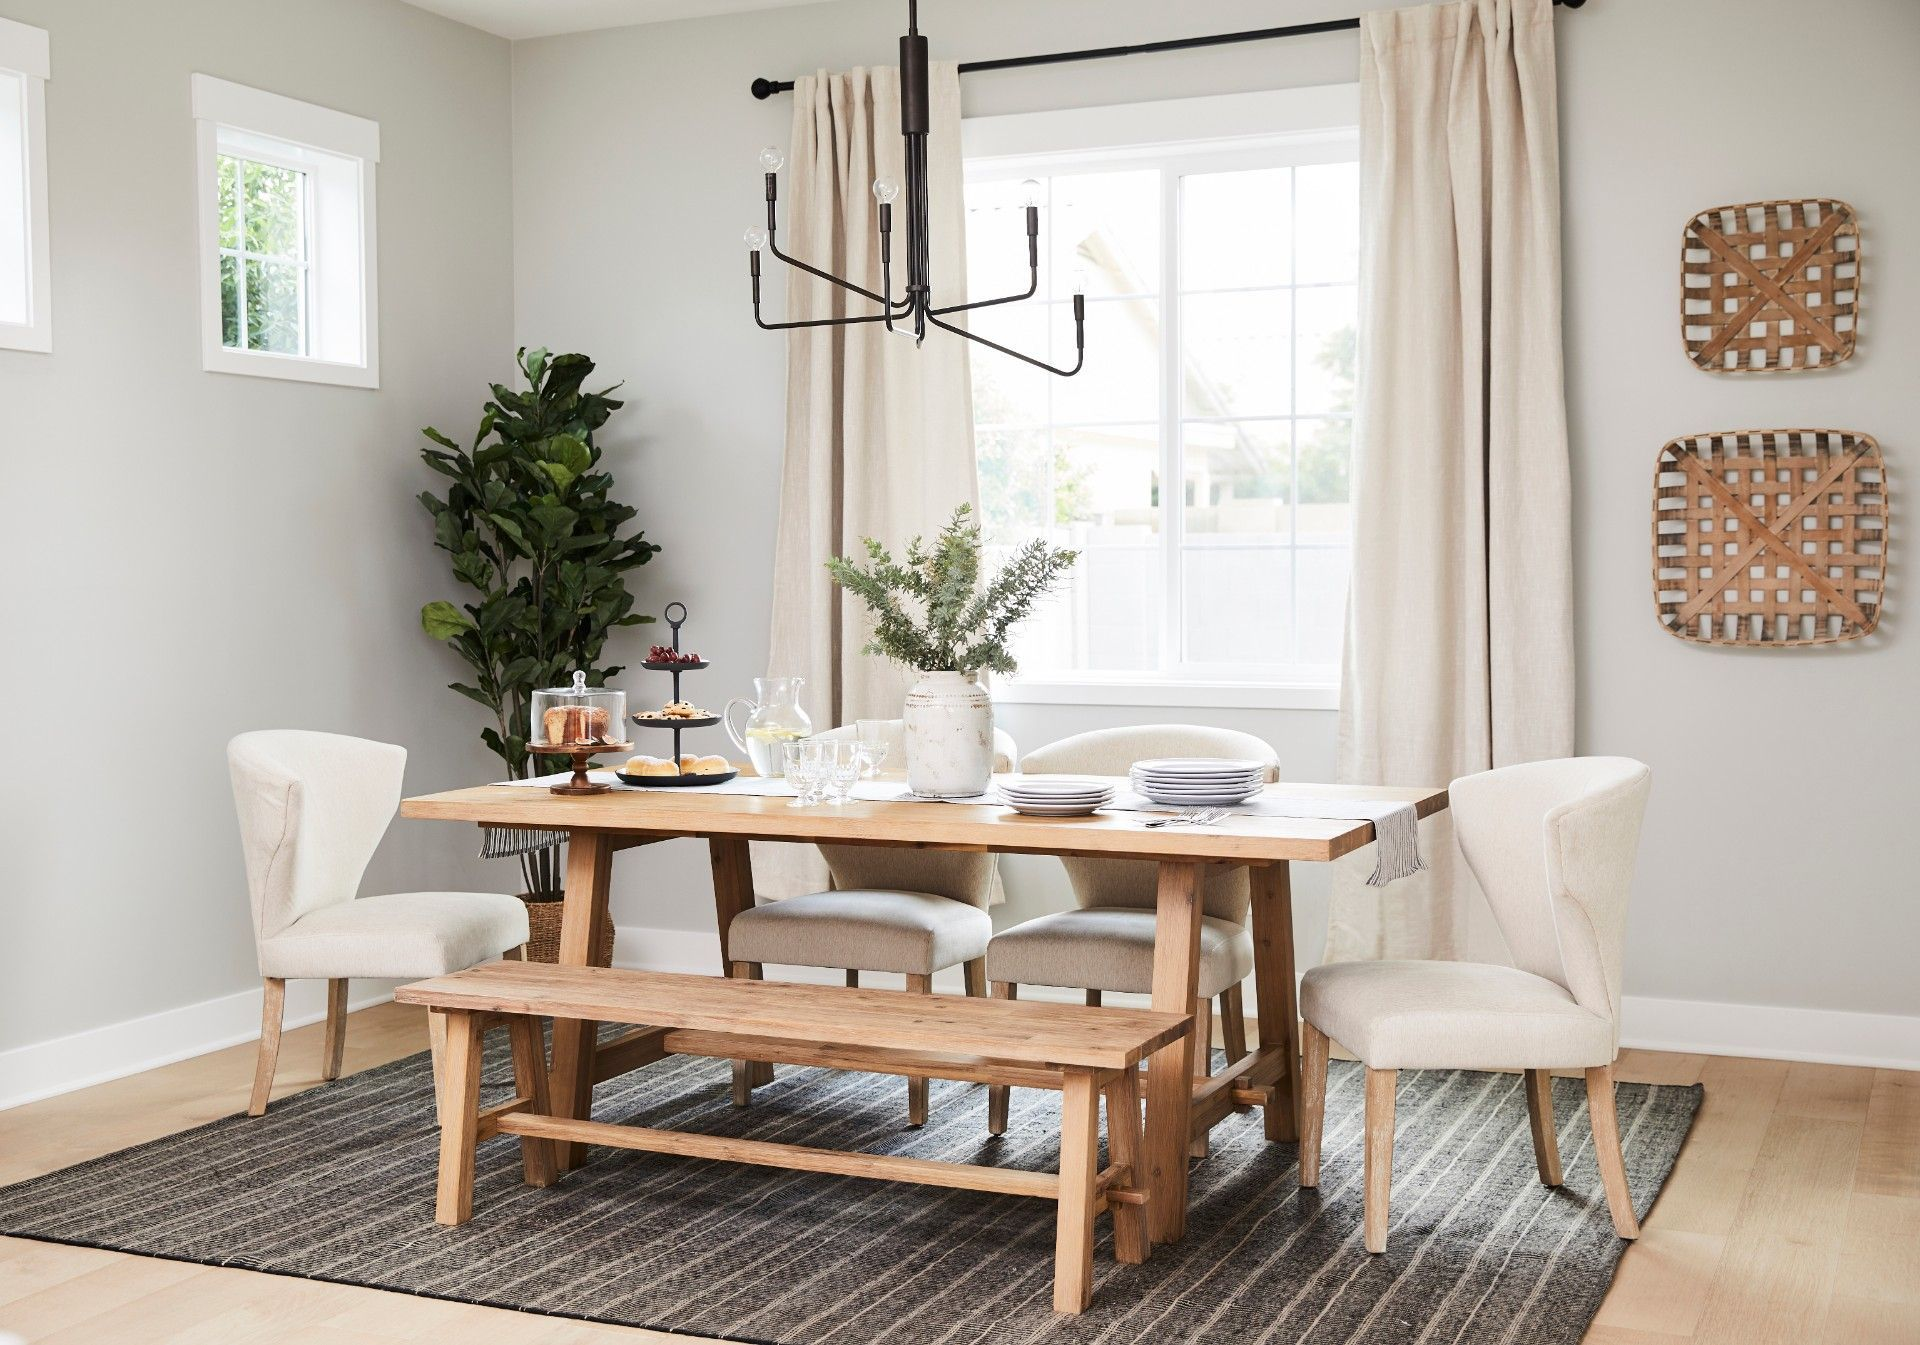 Wayfair Registry One Registry For Everything Home Photo By